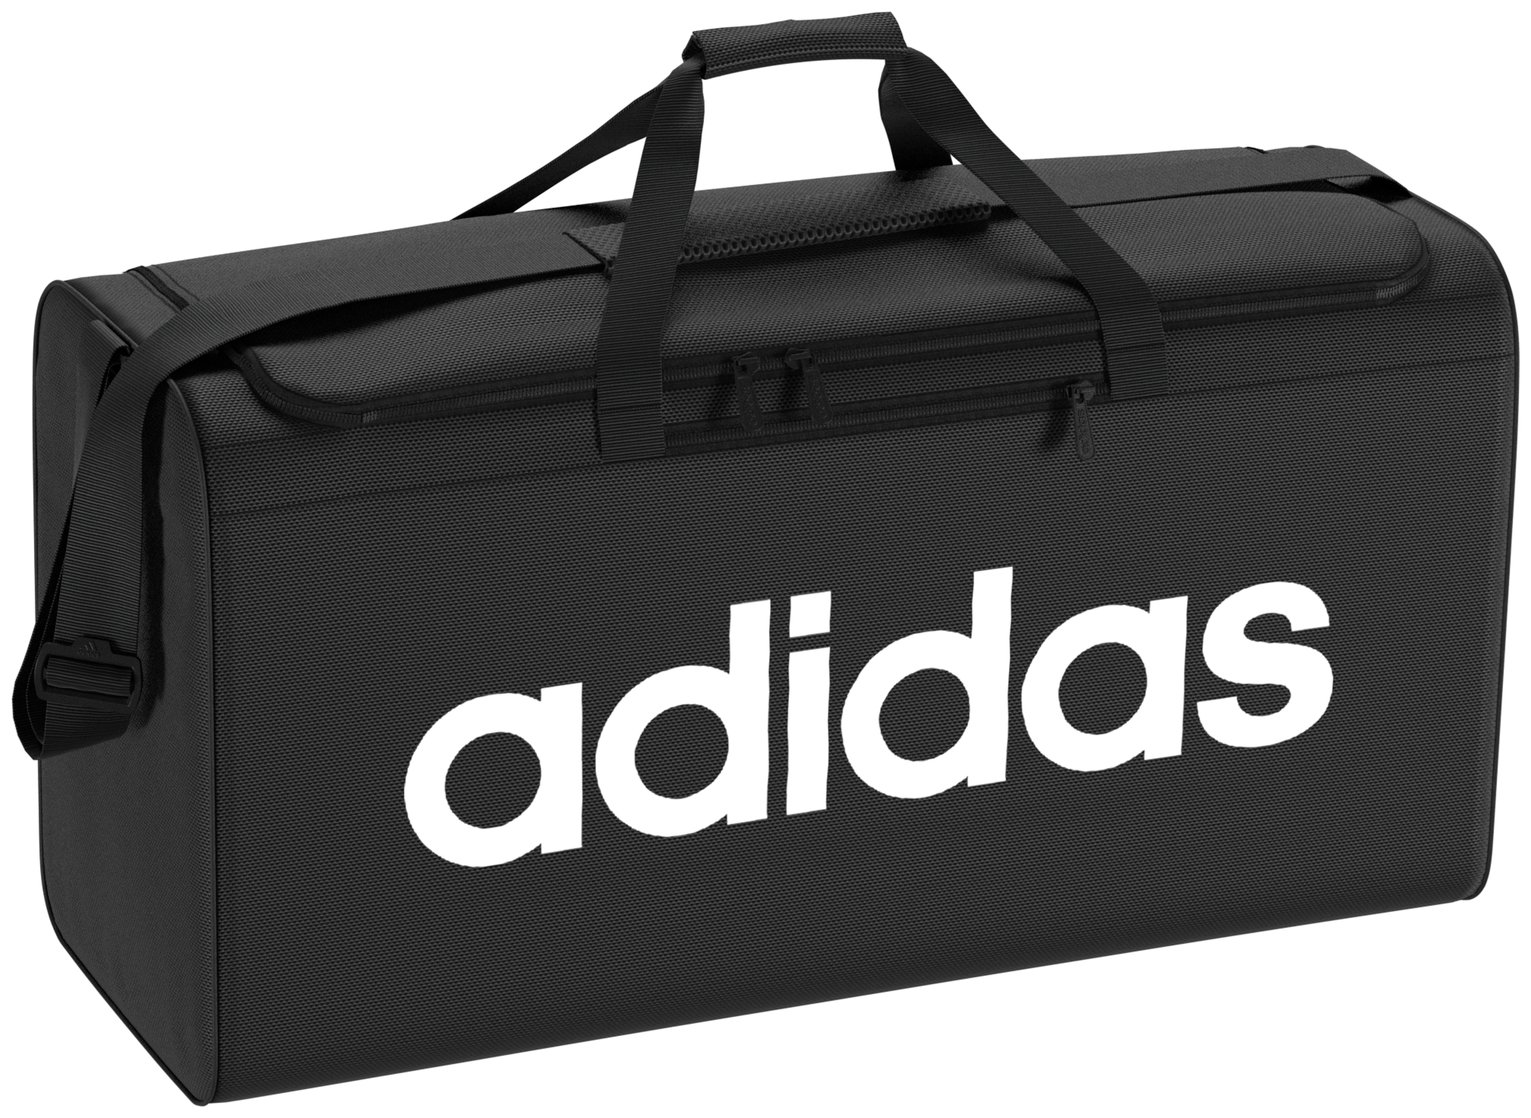 9048c6dcd36e46 Sports - Gym Bags: Find adidas products online at Wunderstore